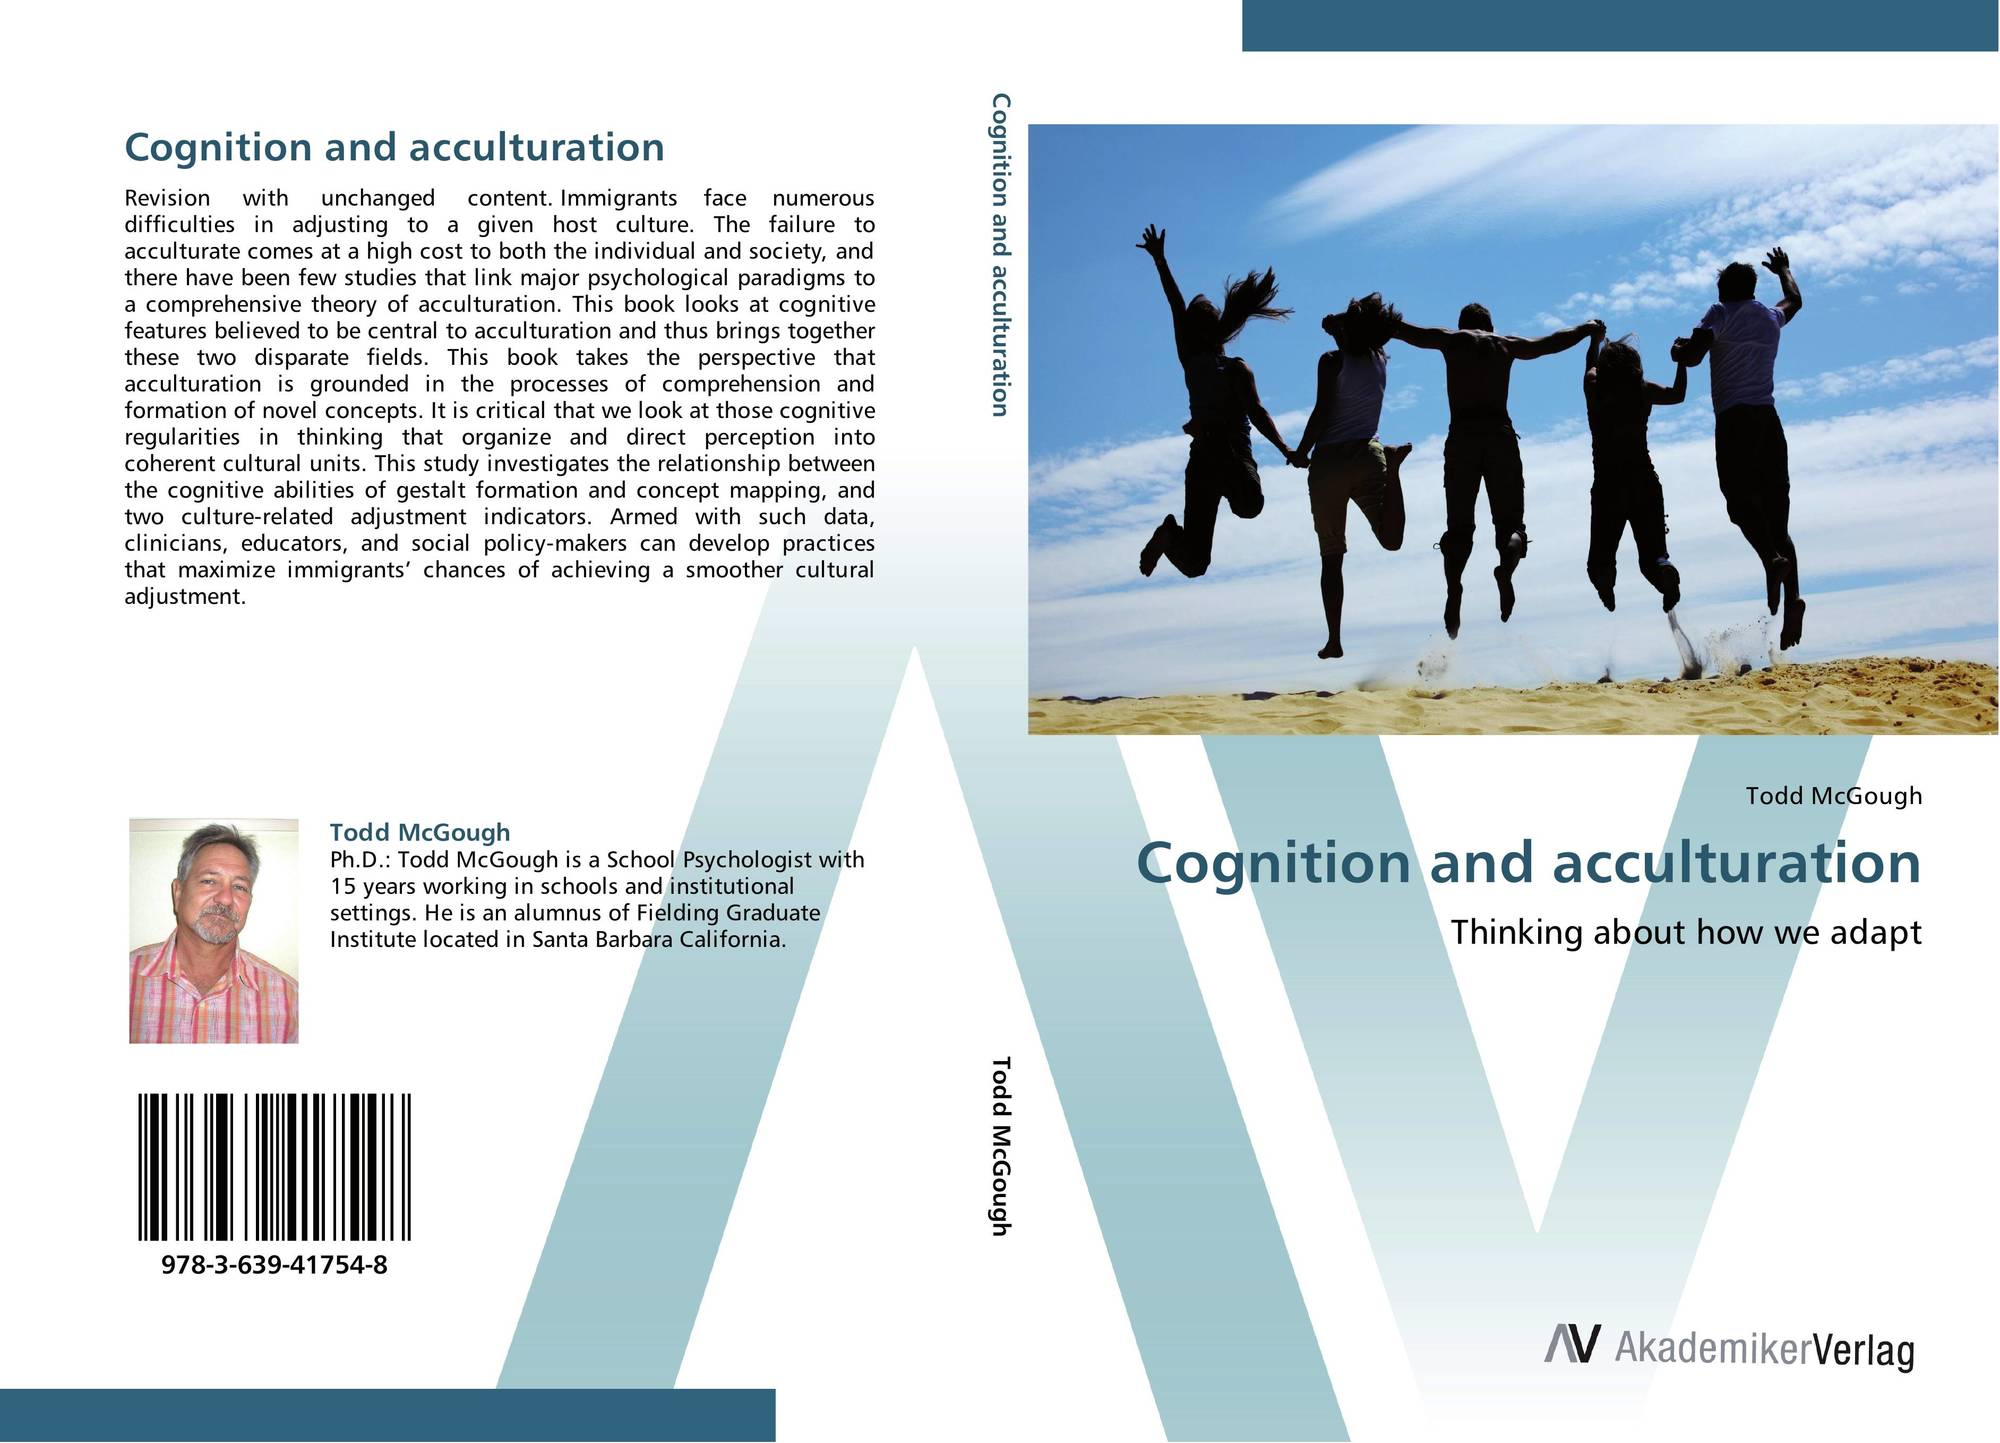 effects of acculturation on adolescents and The authors assert that understanding the effects of acculturation on these behaviors could begin to explain why african-american adolescent substance abuse rates have been historically lower than those of european-american and latino adolescents also included is an examination of research on the role of acculturation in treatment.